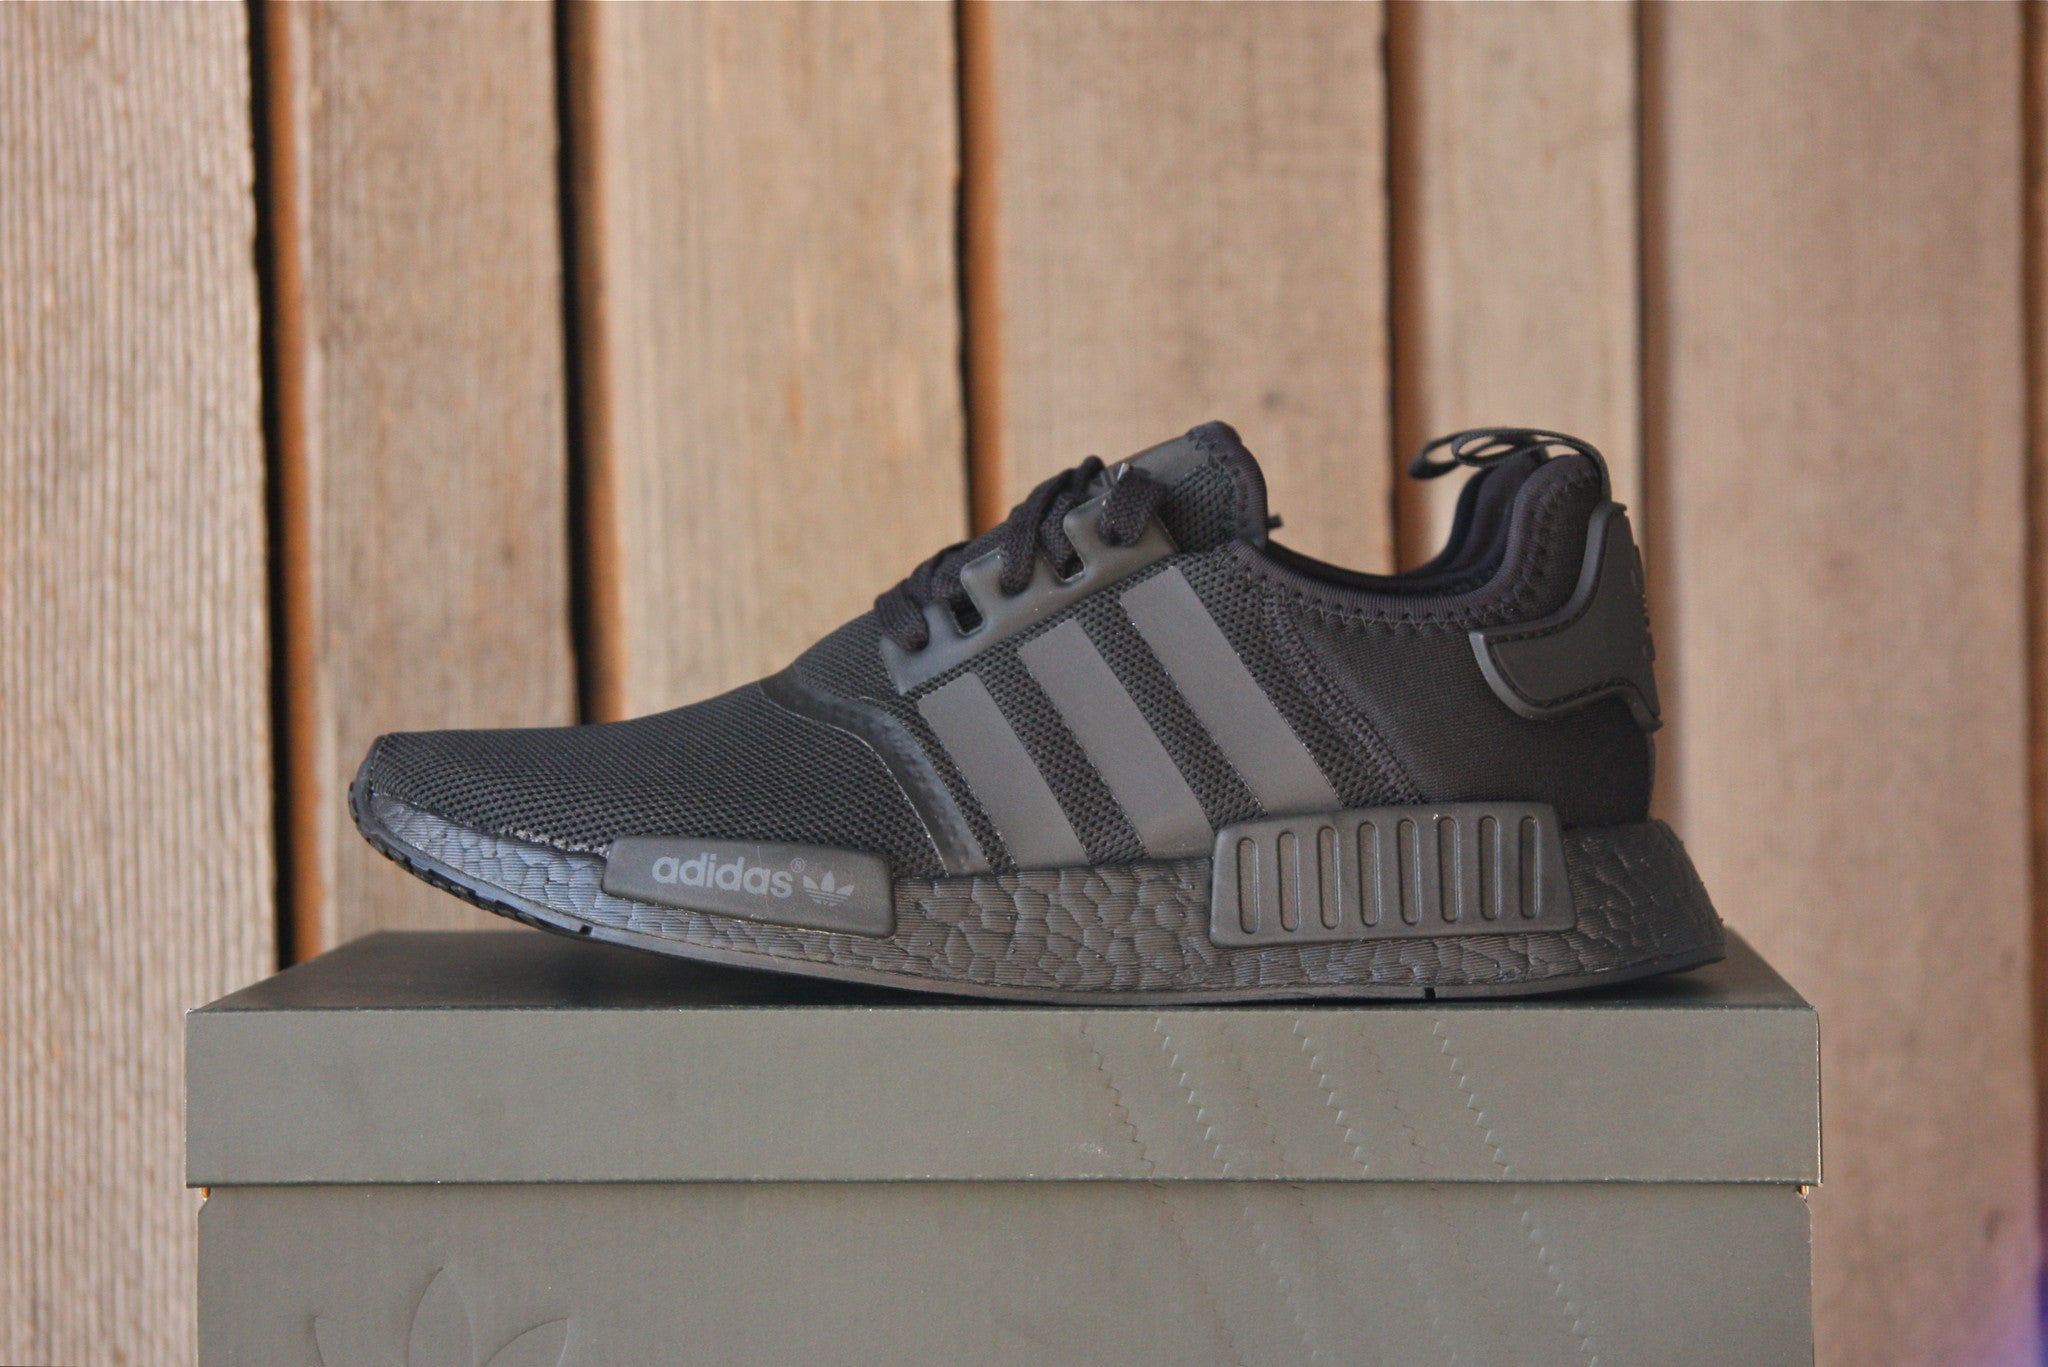 Adidas NMD R1 (Triple Black)